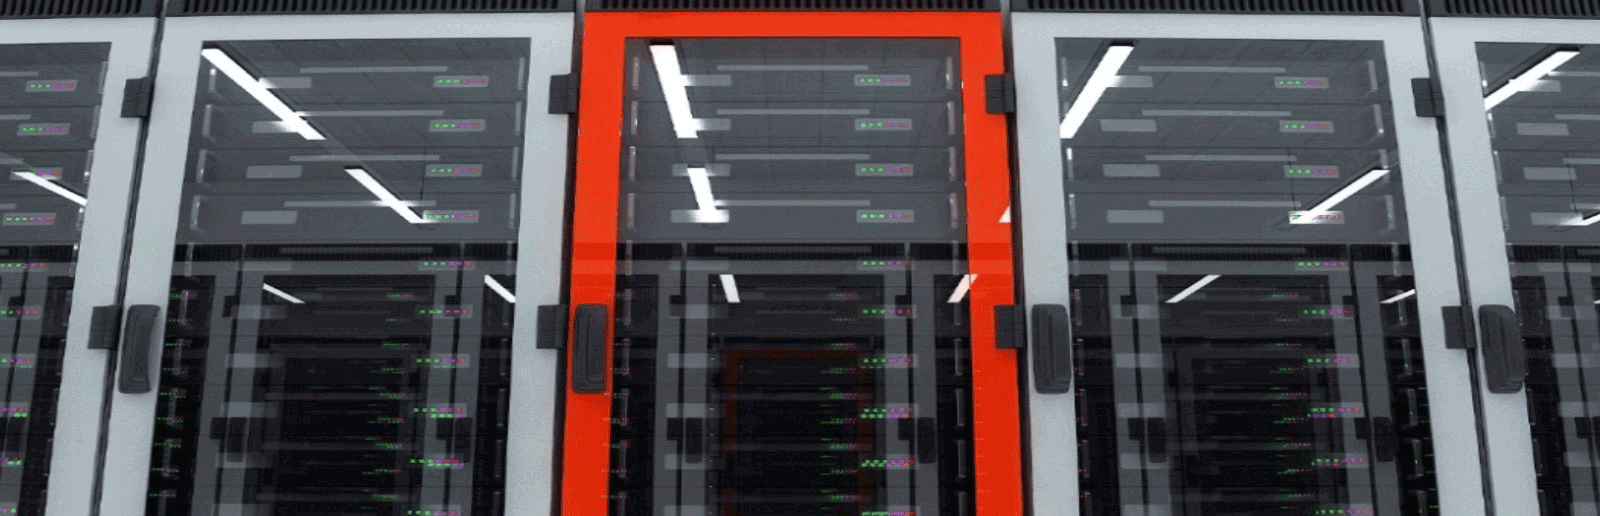 Enterprise NAS Storage Solution for Big Data Storage Challenges